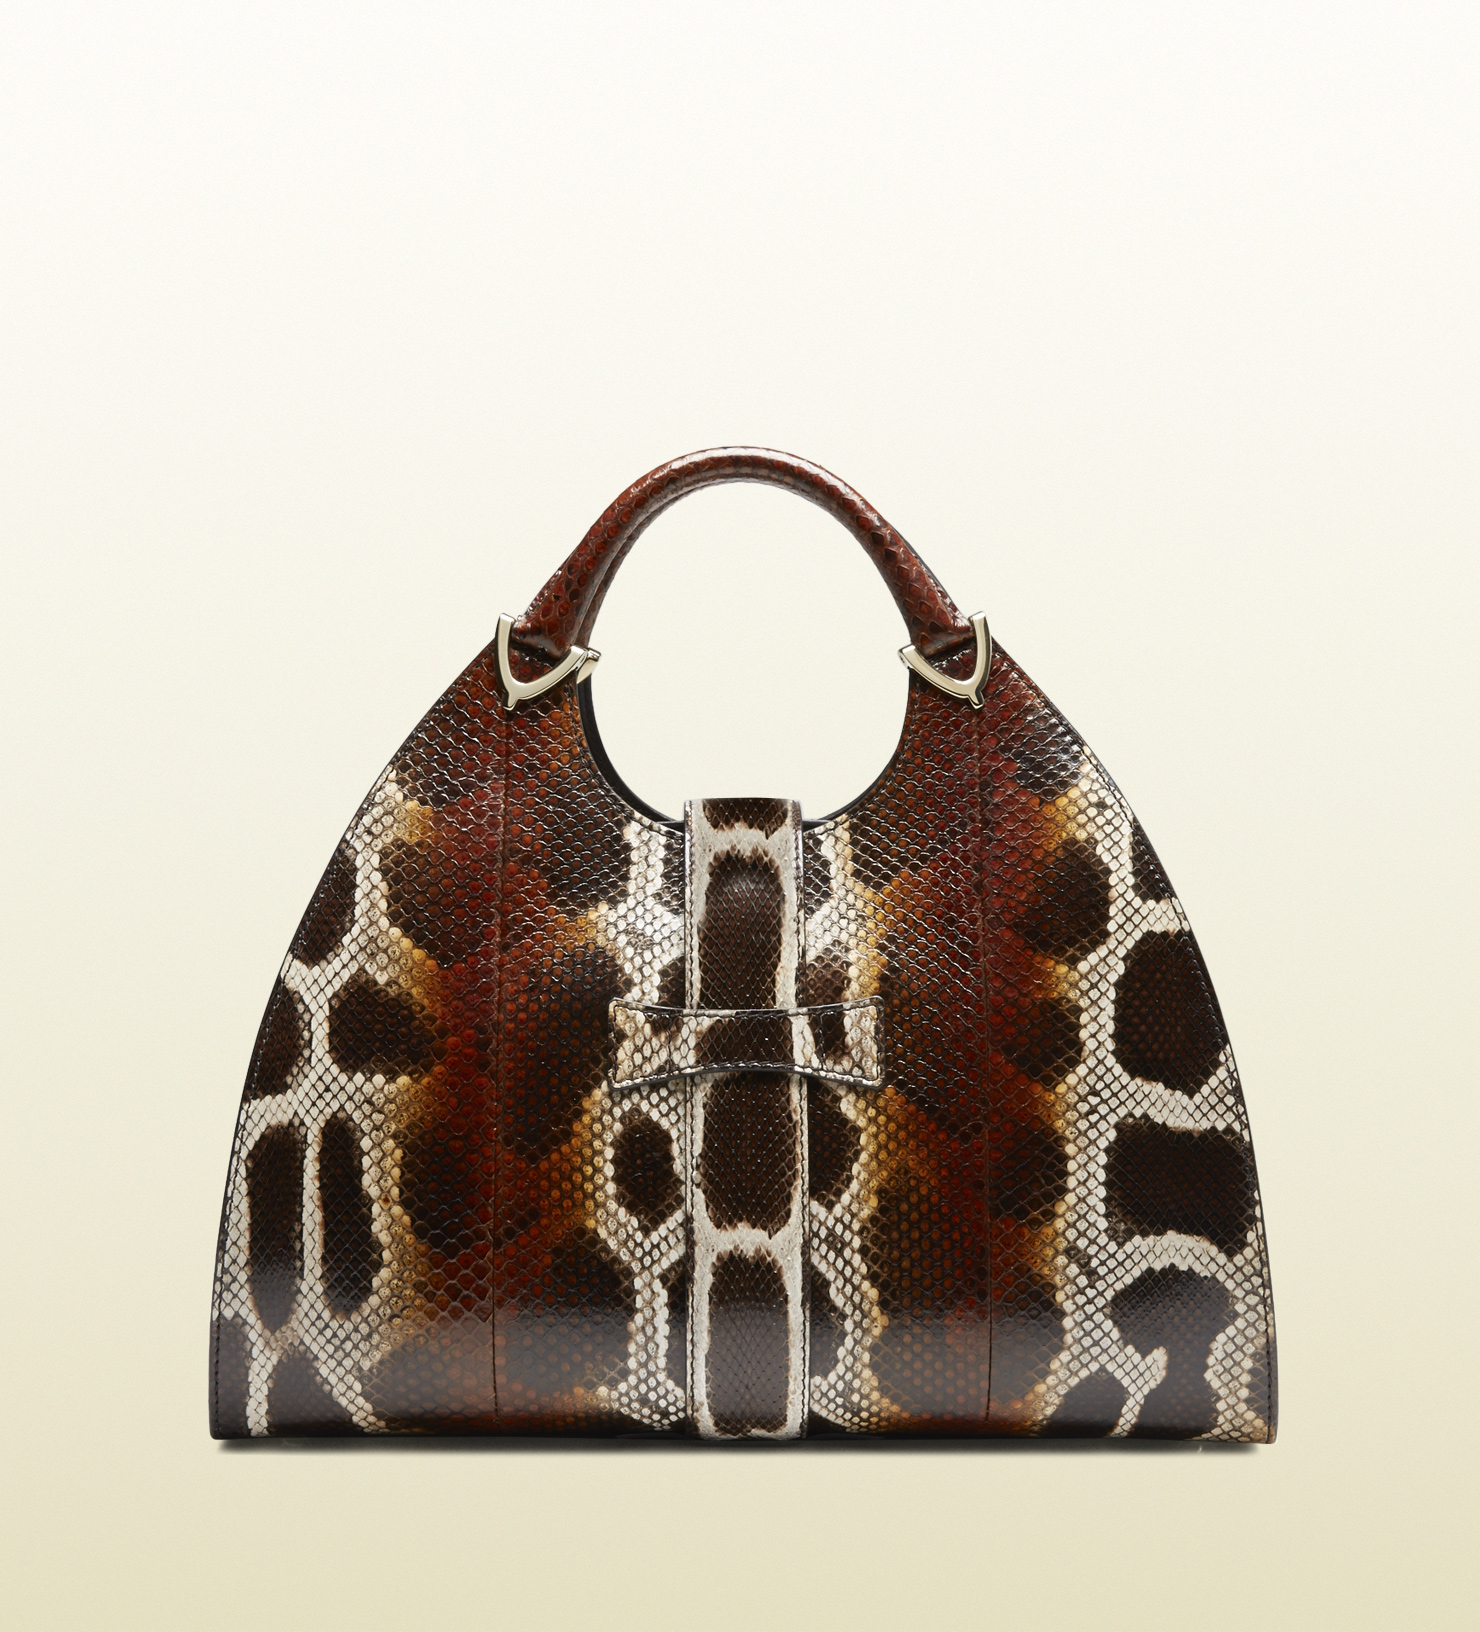 d053b3aa0e6 Lyst - Gucci Stirrup Python Top Handle Bag in Brown